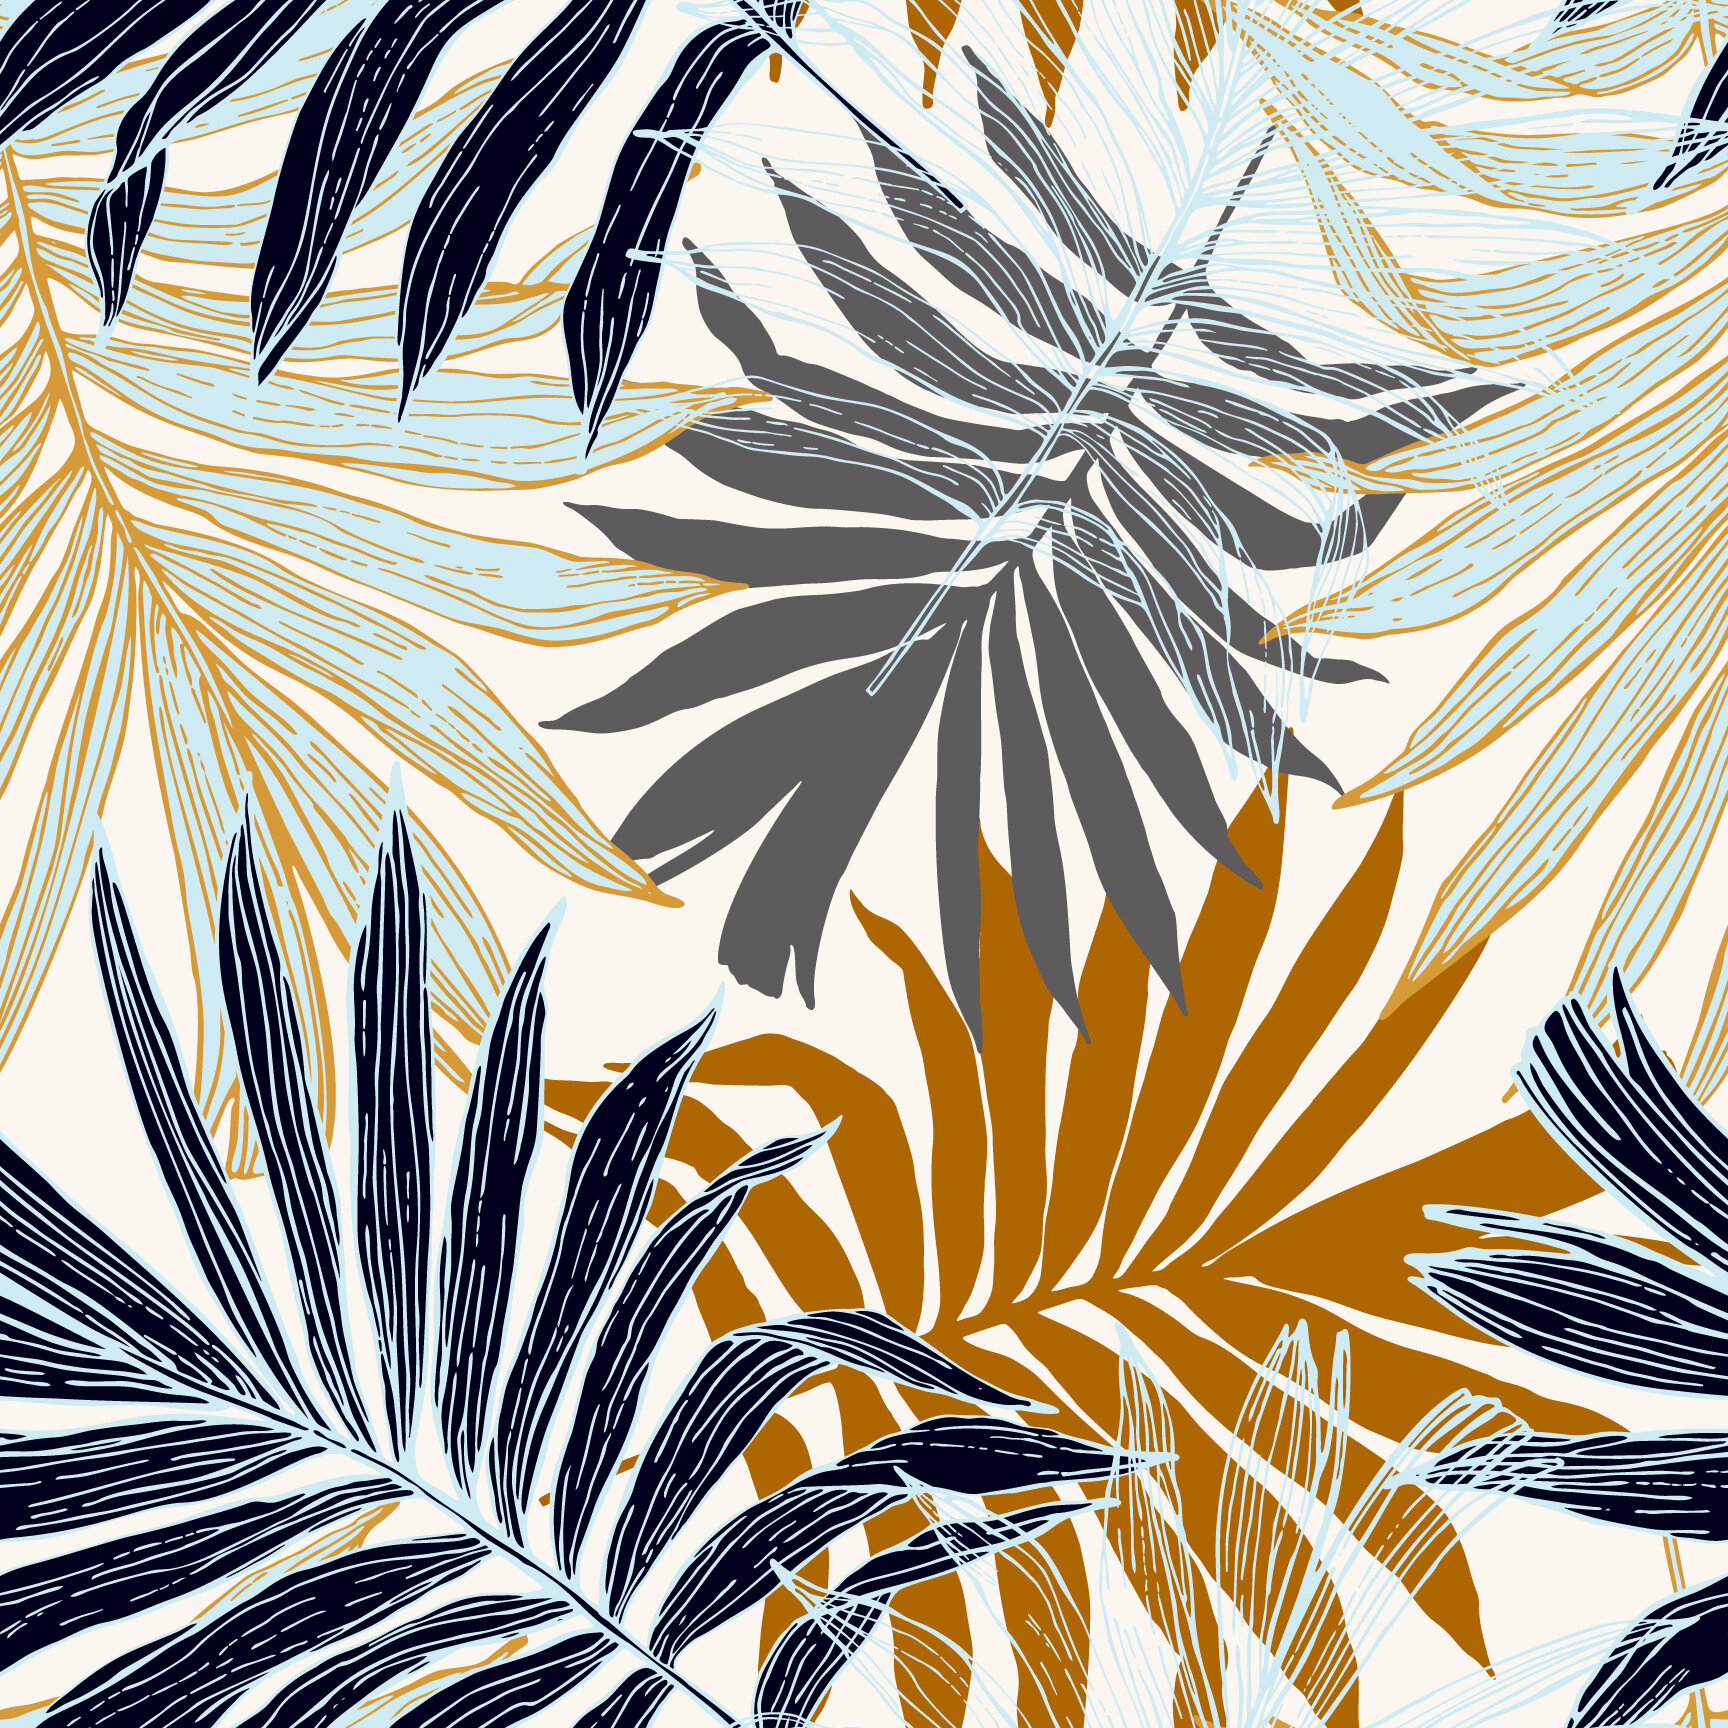 Bay Isle Home Palm Tree Leaves In Silhouette 10 L X 24 W Peel And Stick Wallpaper Roll Wayfair